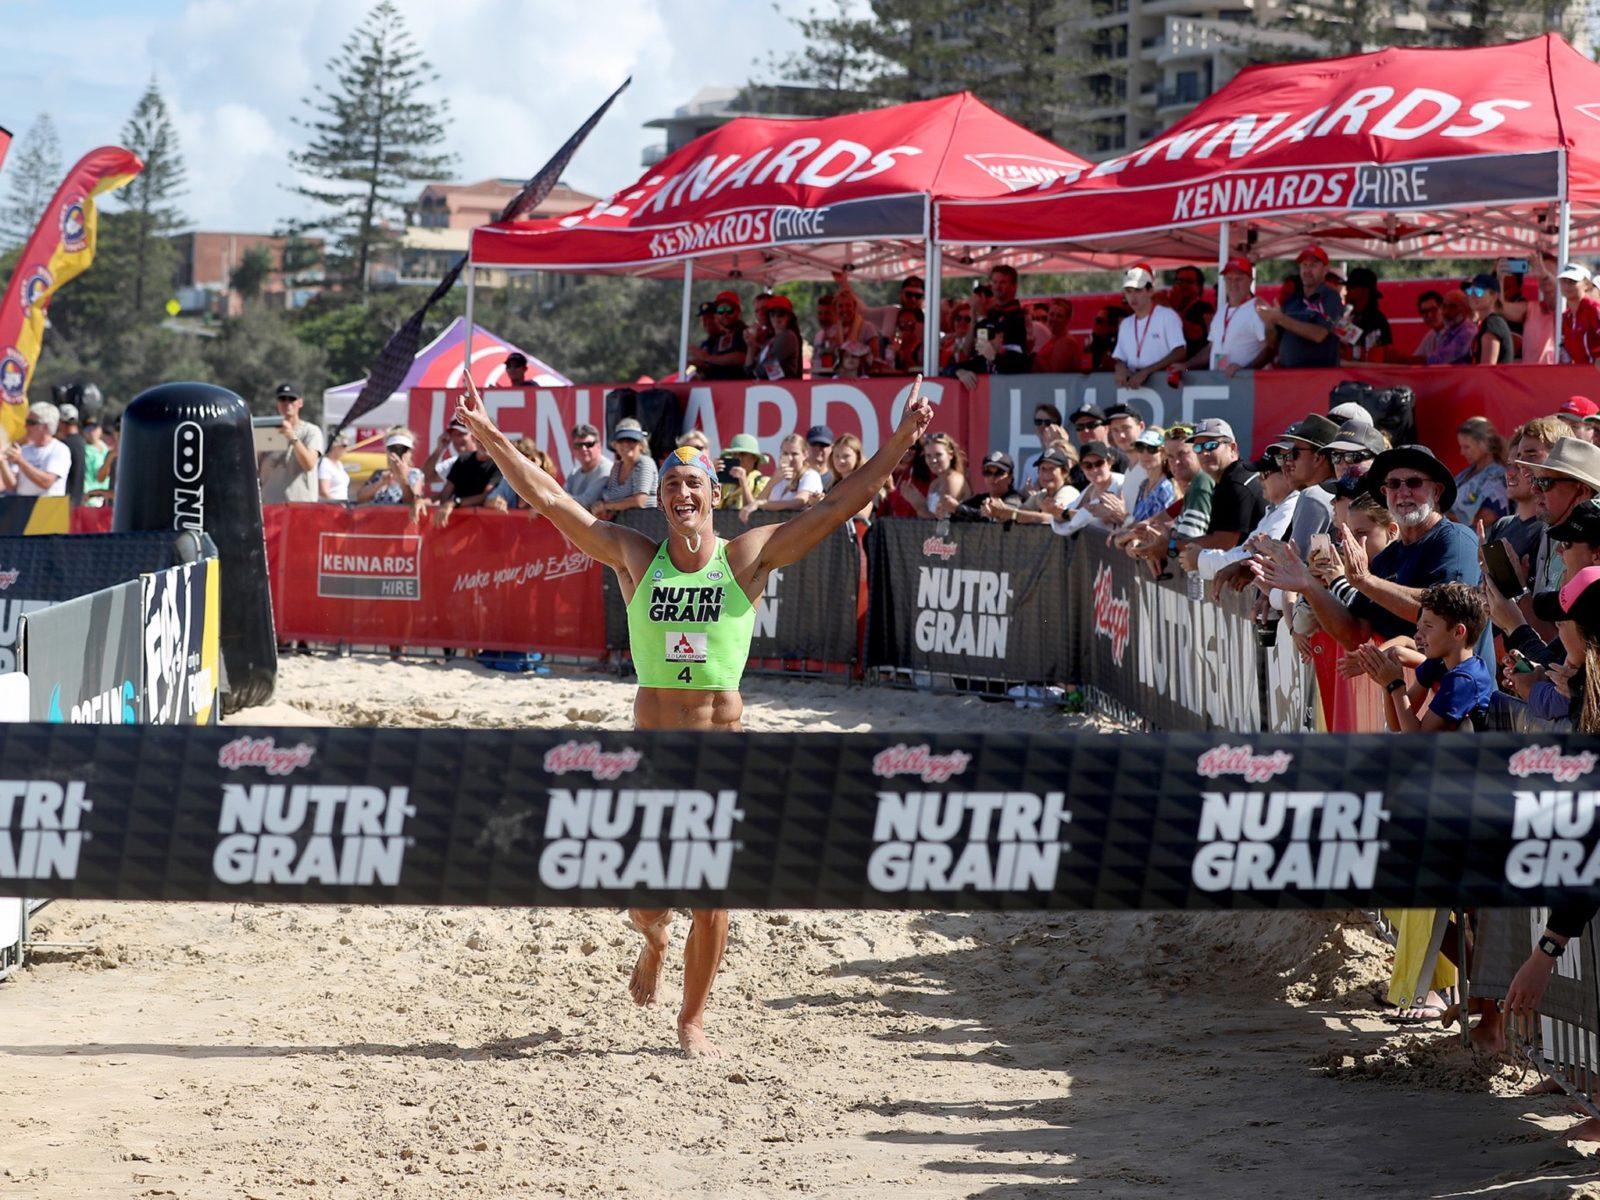 Ali Day claiming the Nutri-Grain Ironman victory last summer.